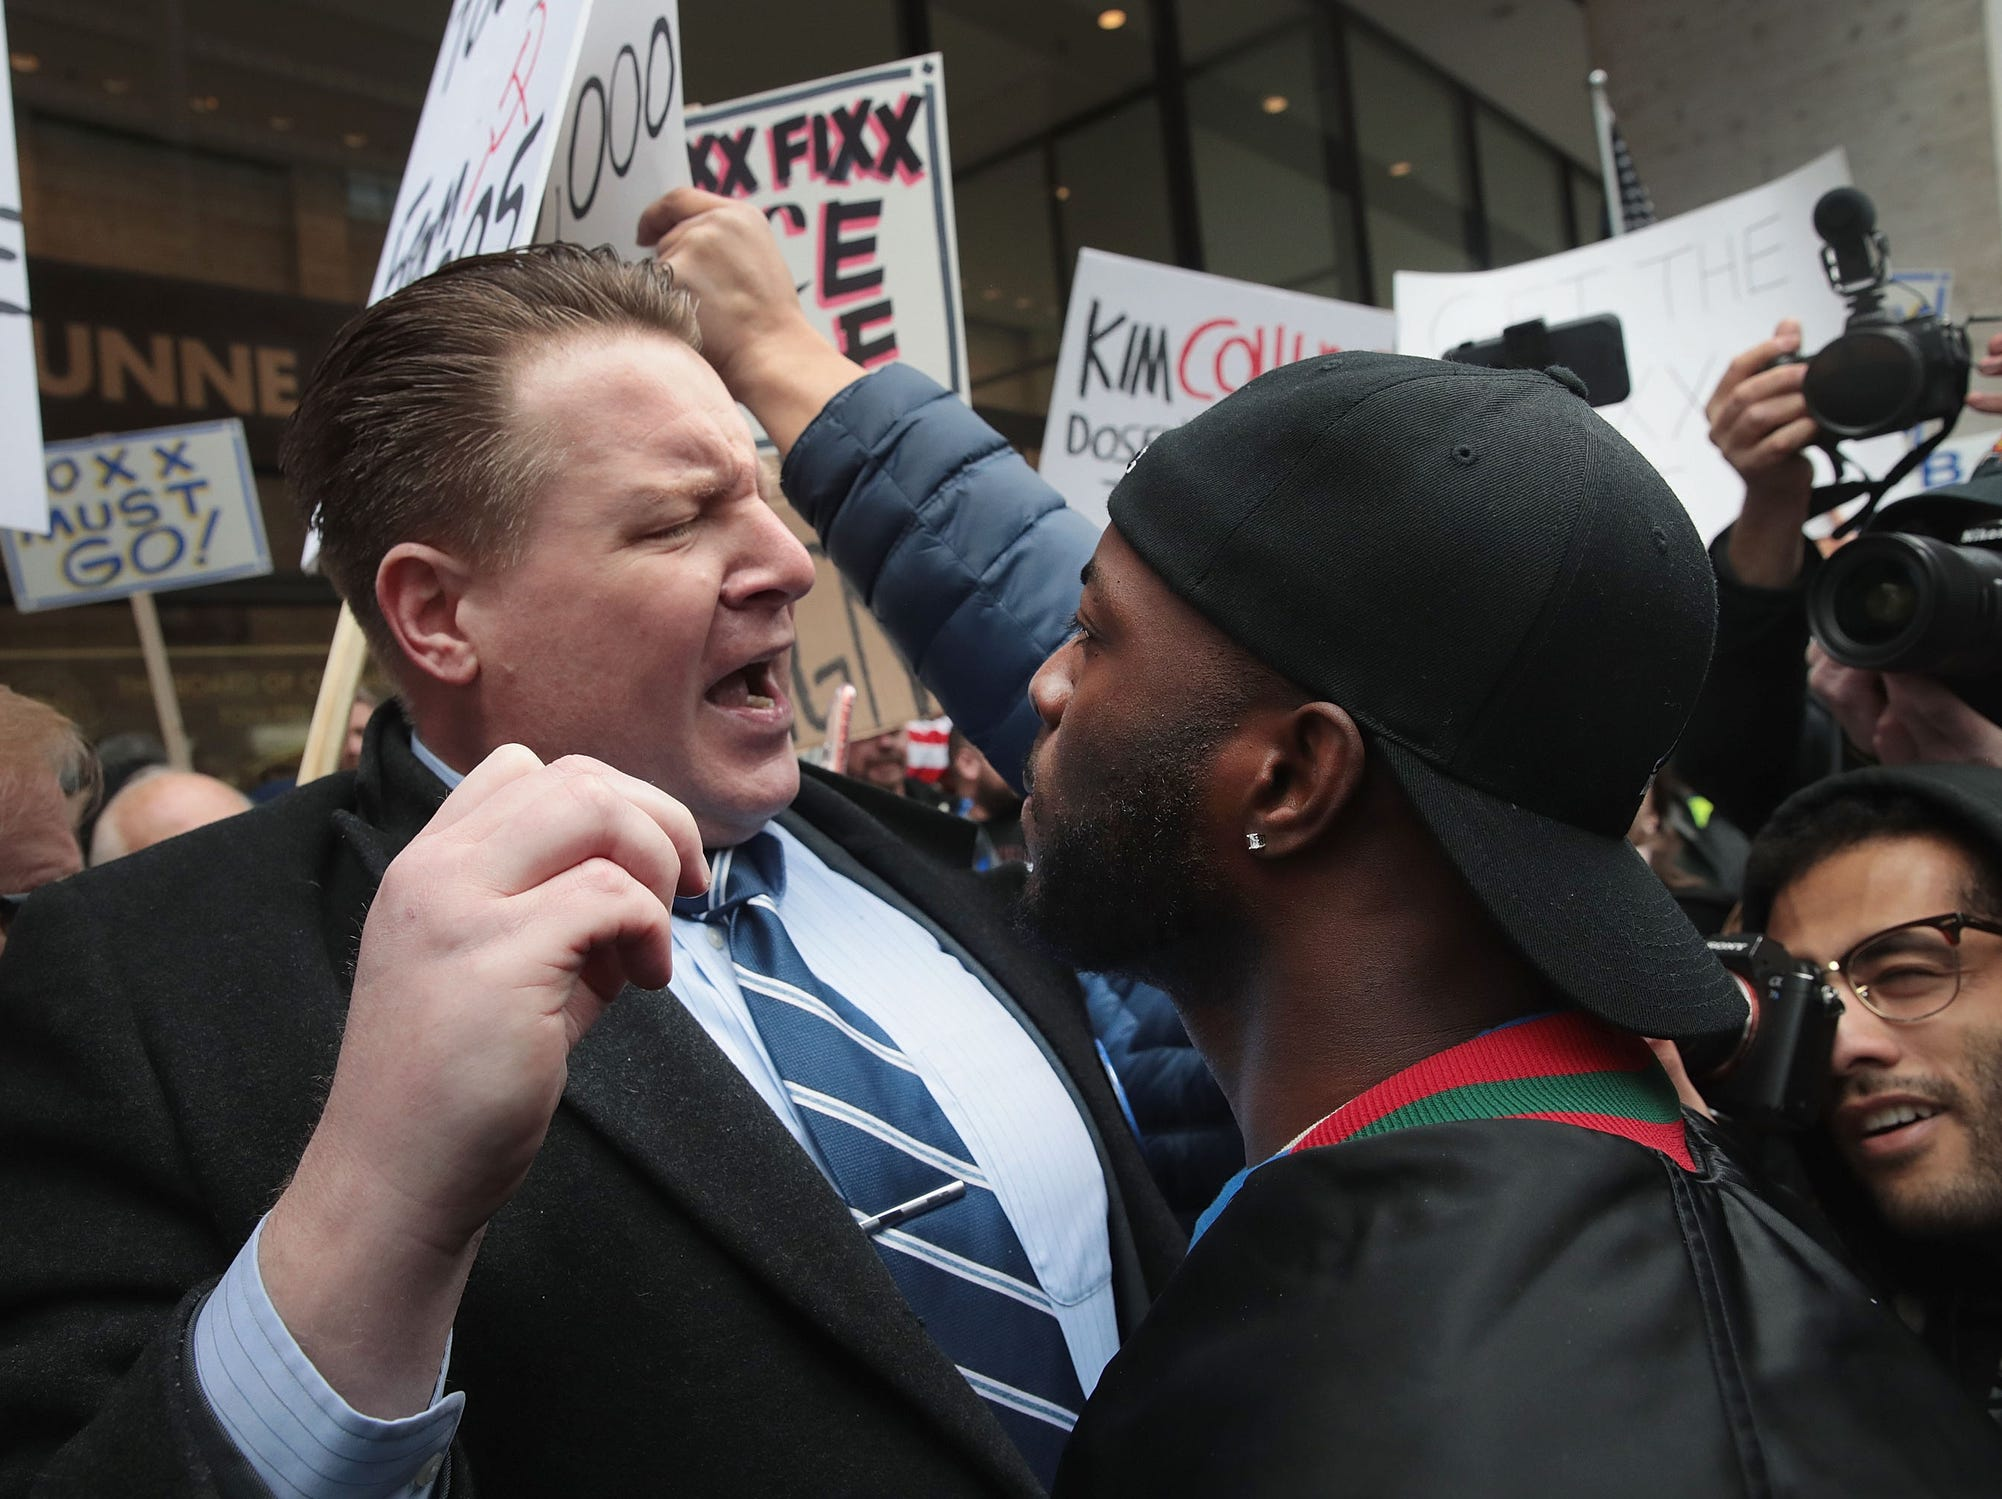 A supporter of Cook County State's Attorney Kim Foxx, right, argues with a protestor during a demonstration organized by the Fraternal Order of Police to call for Foxx's removal on April 1, 2019 in Chicago.